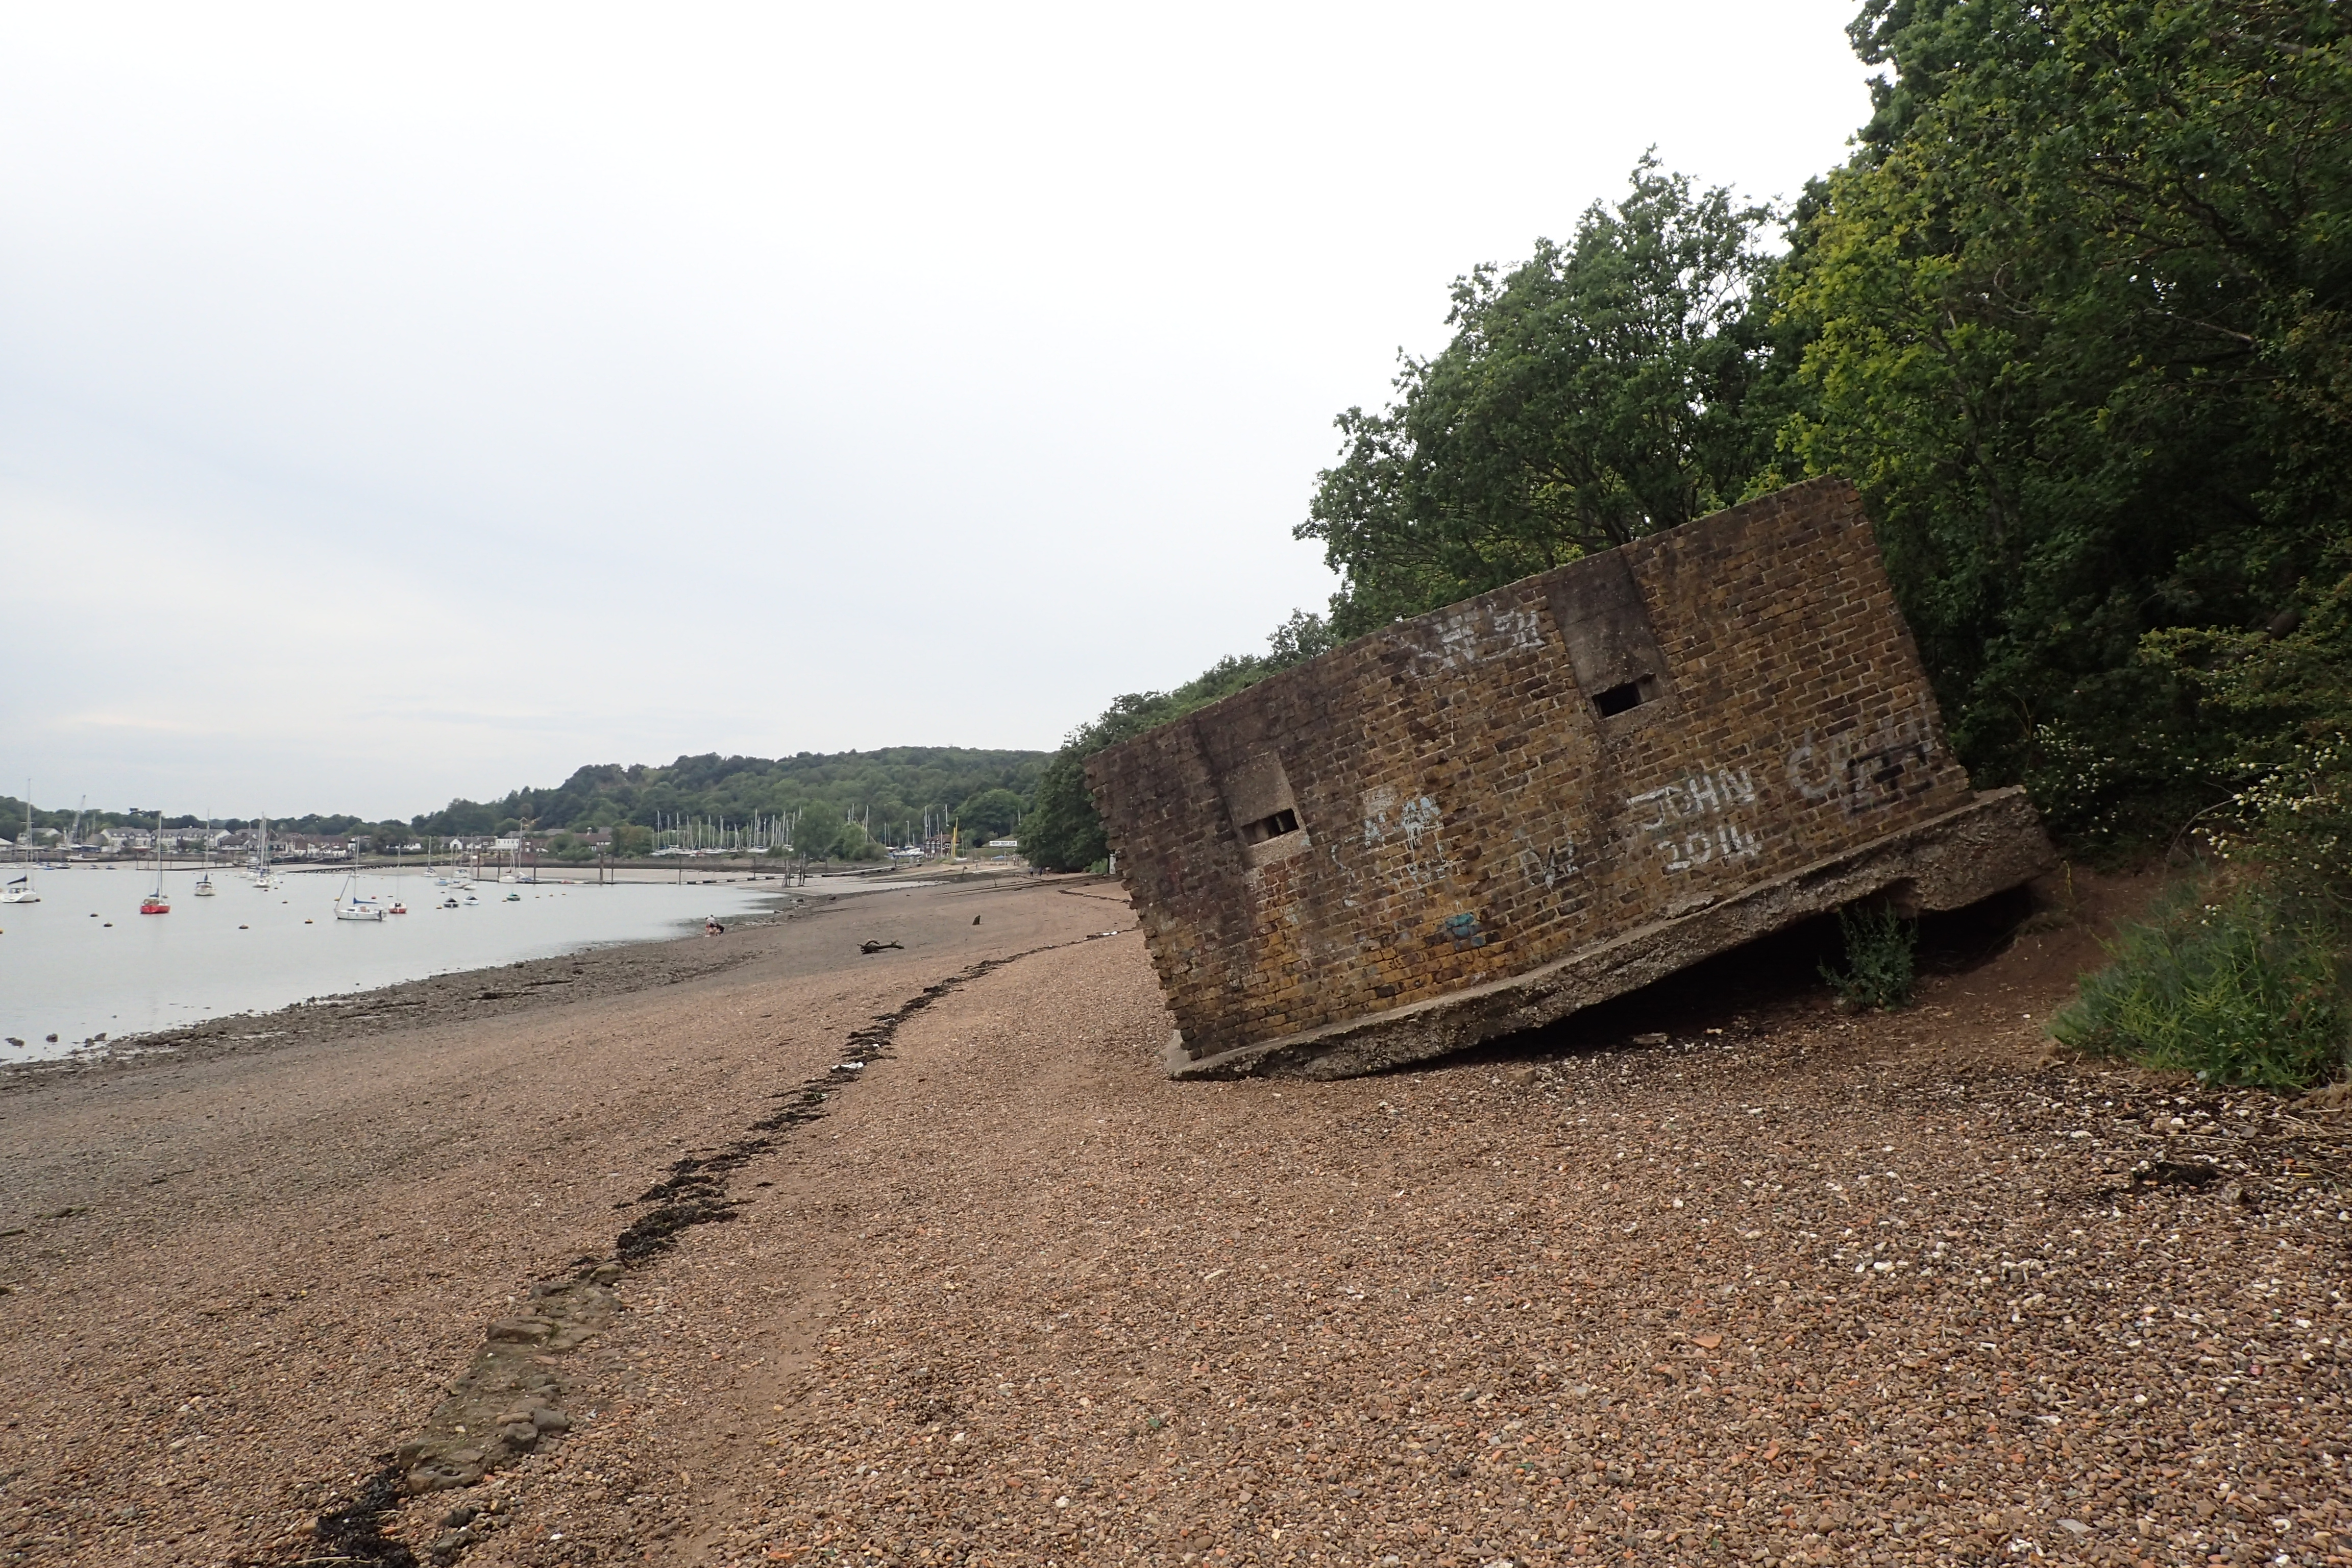 Following the shore approaching Medway, the Saxon Shore Way passes a second World War pillbox that has been undercut by the River Medway